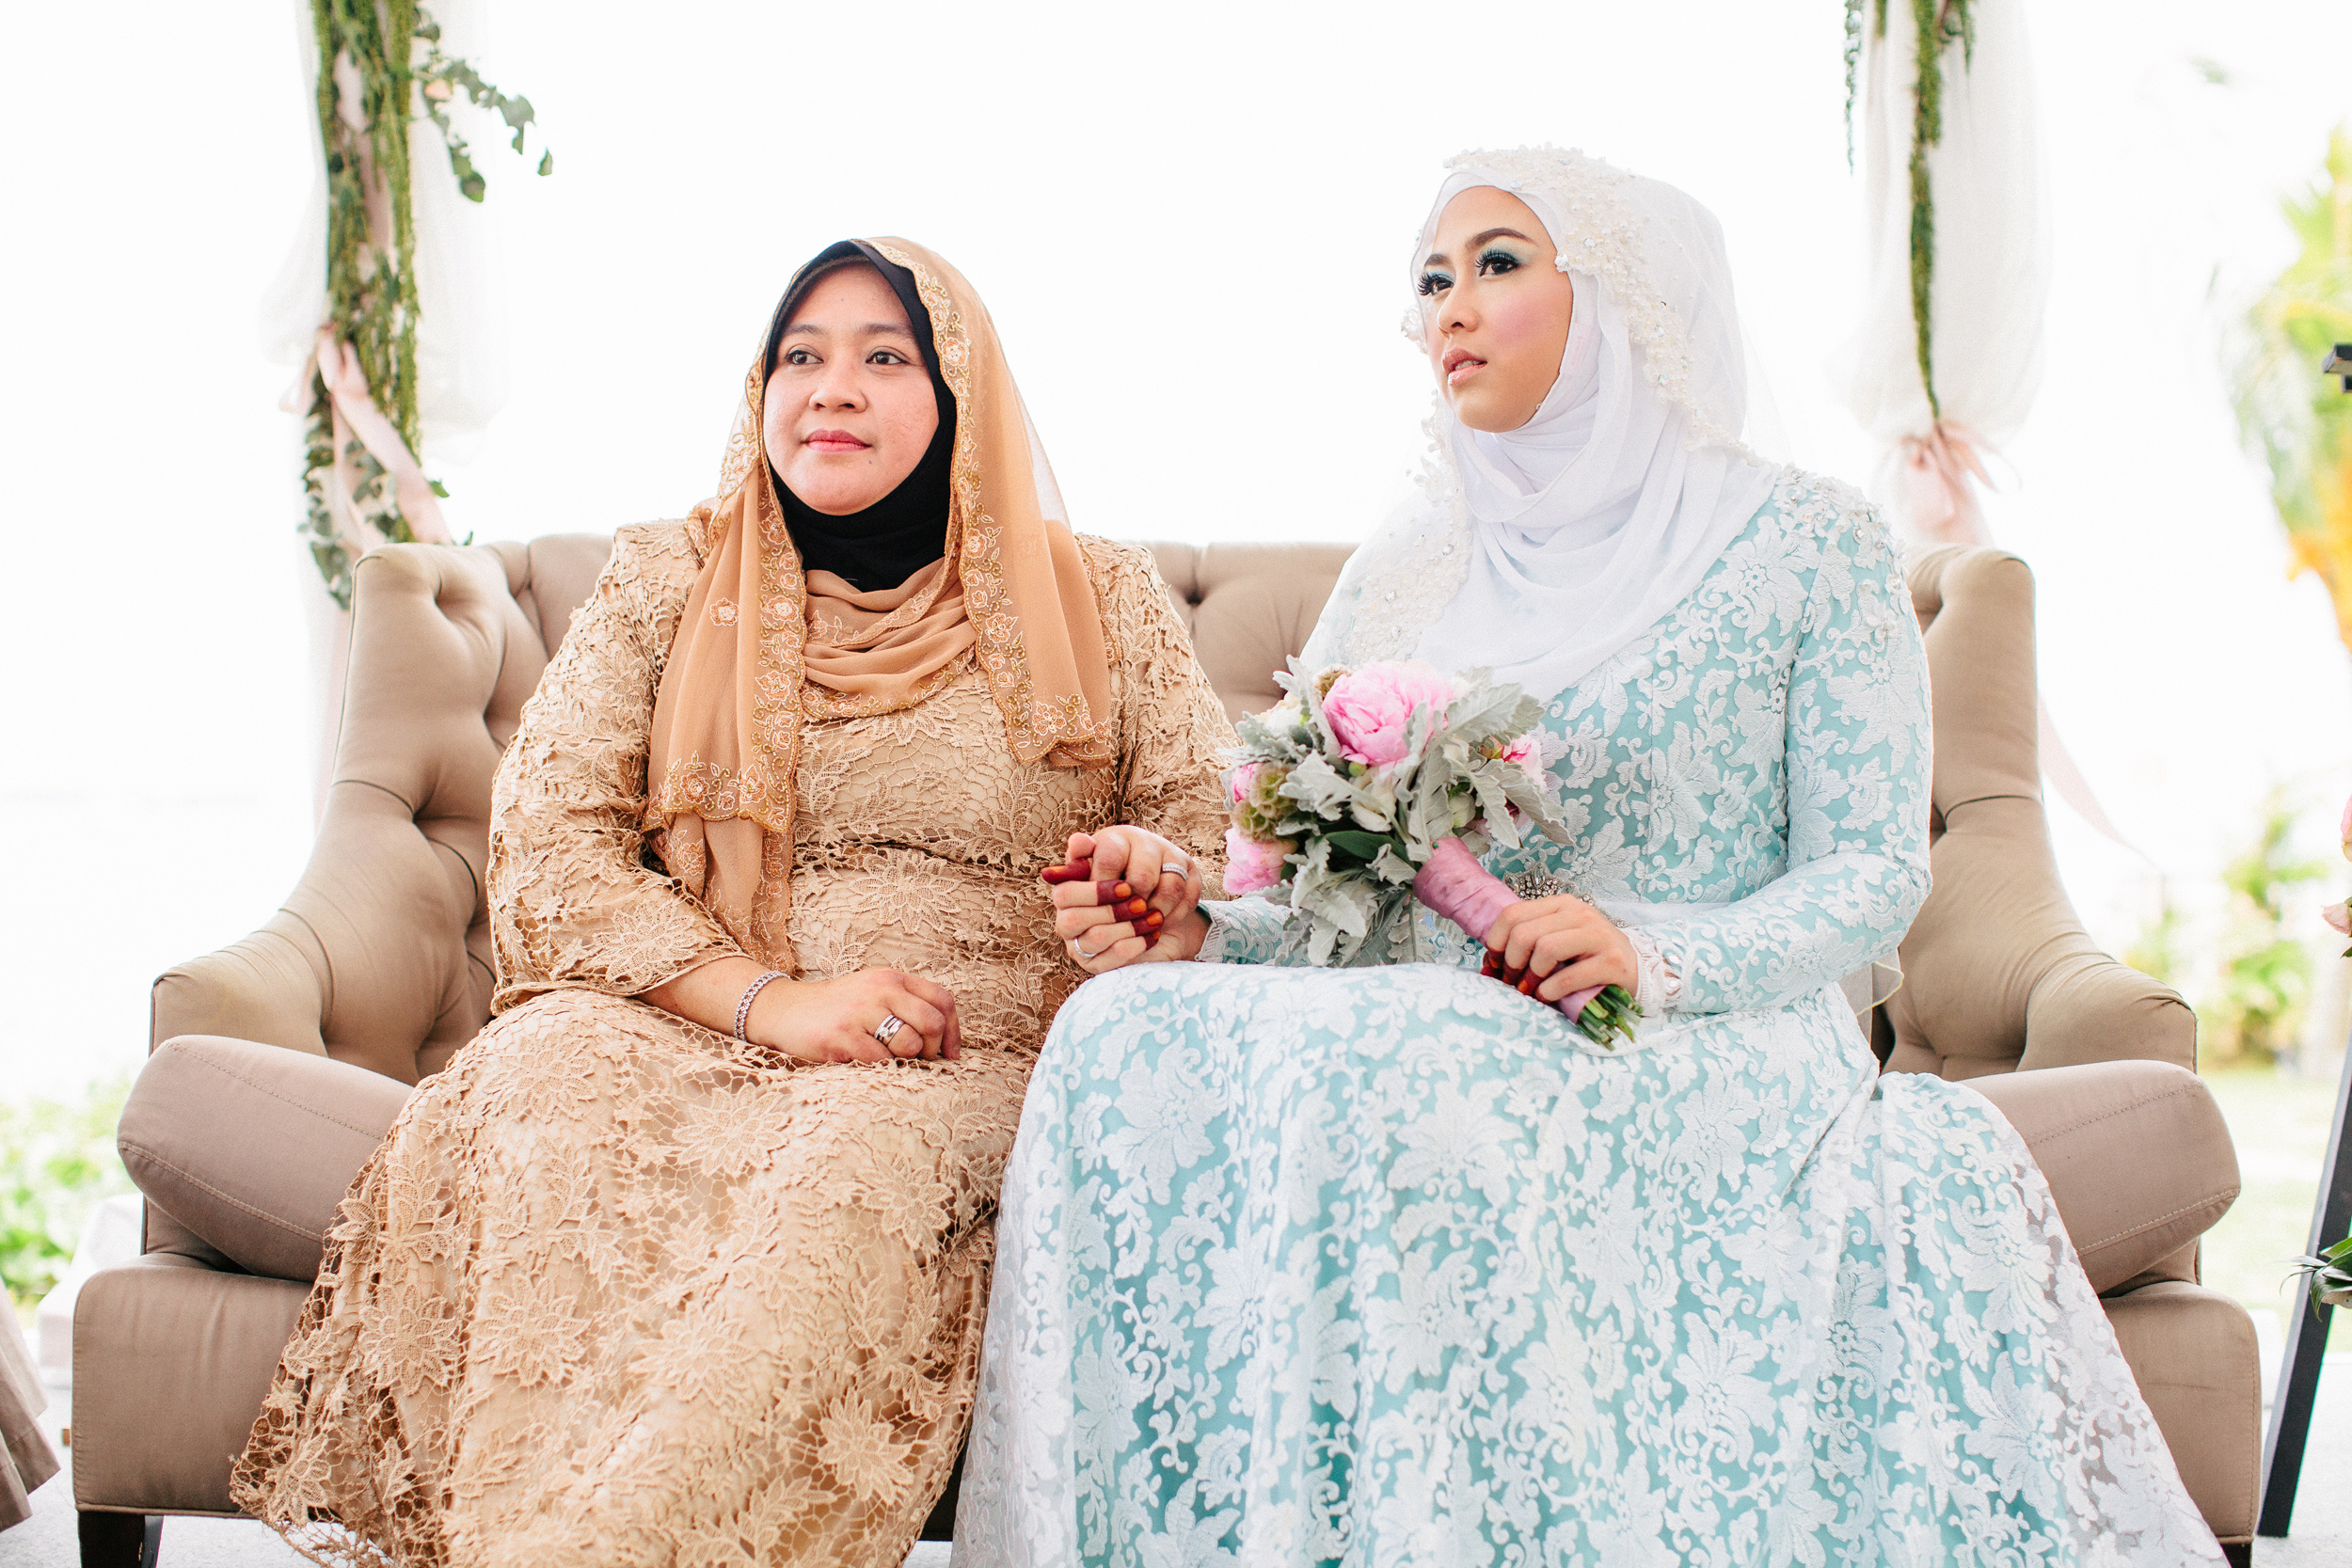 singapore-wedding-photographer-wemadethese-aisyah-helmi-17.jpg